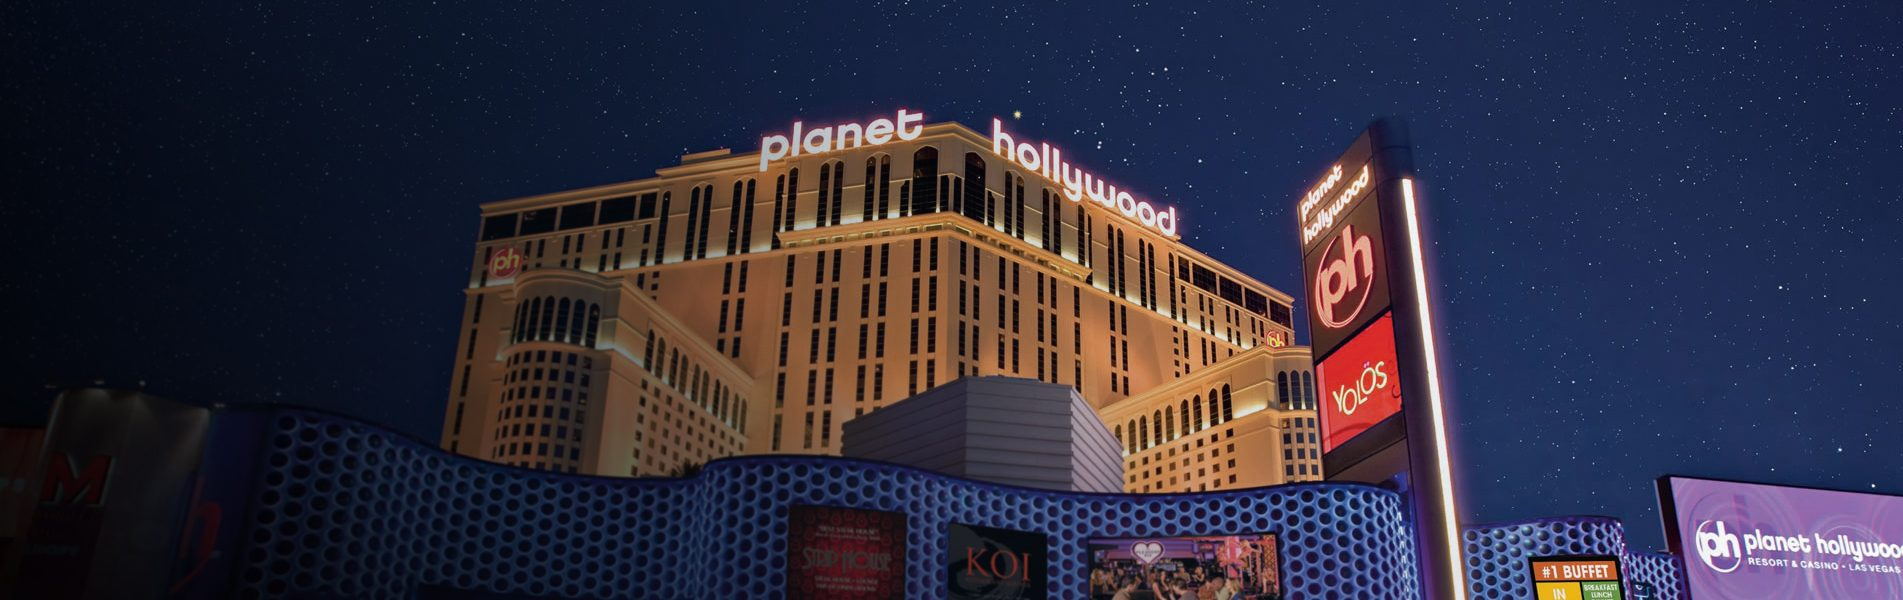 Planet Hollywood Casino Las Vegas 1